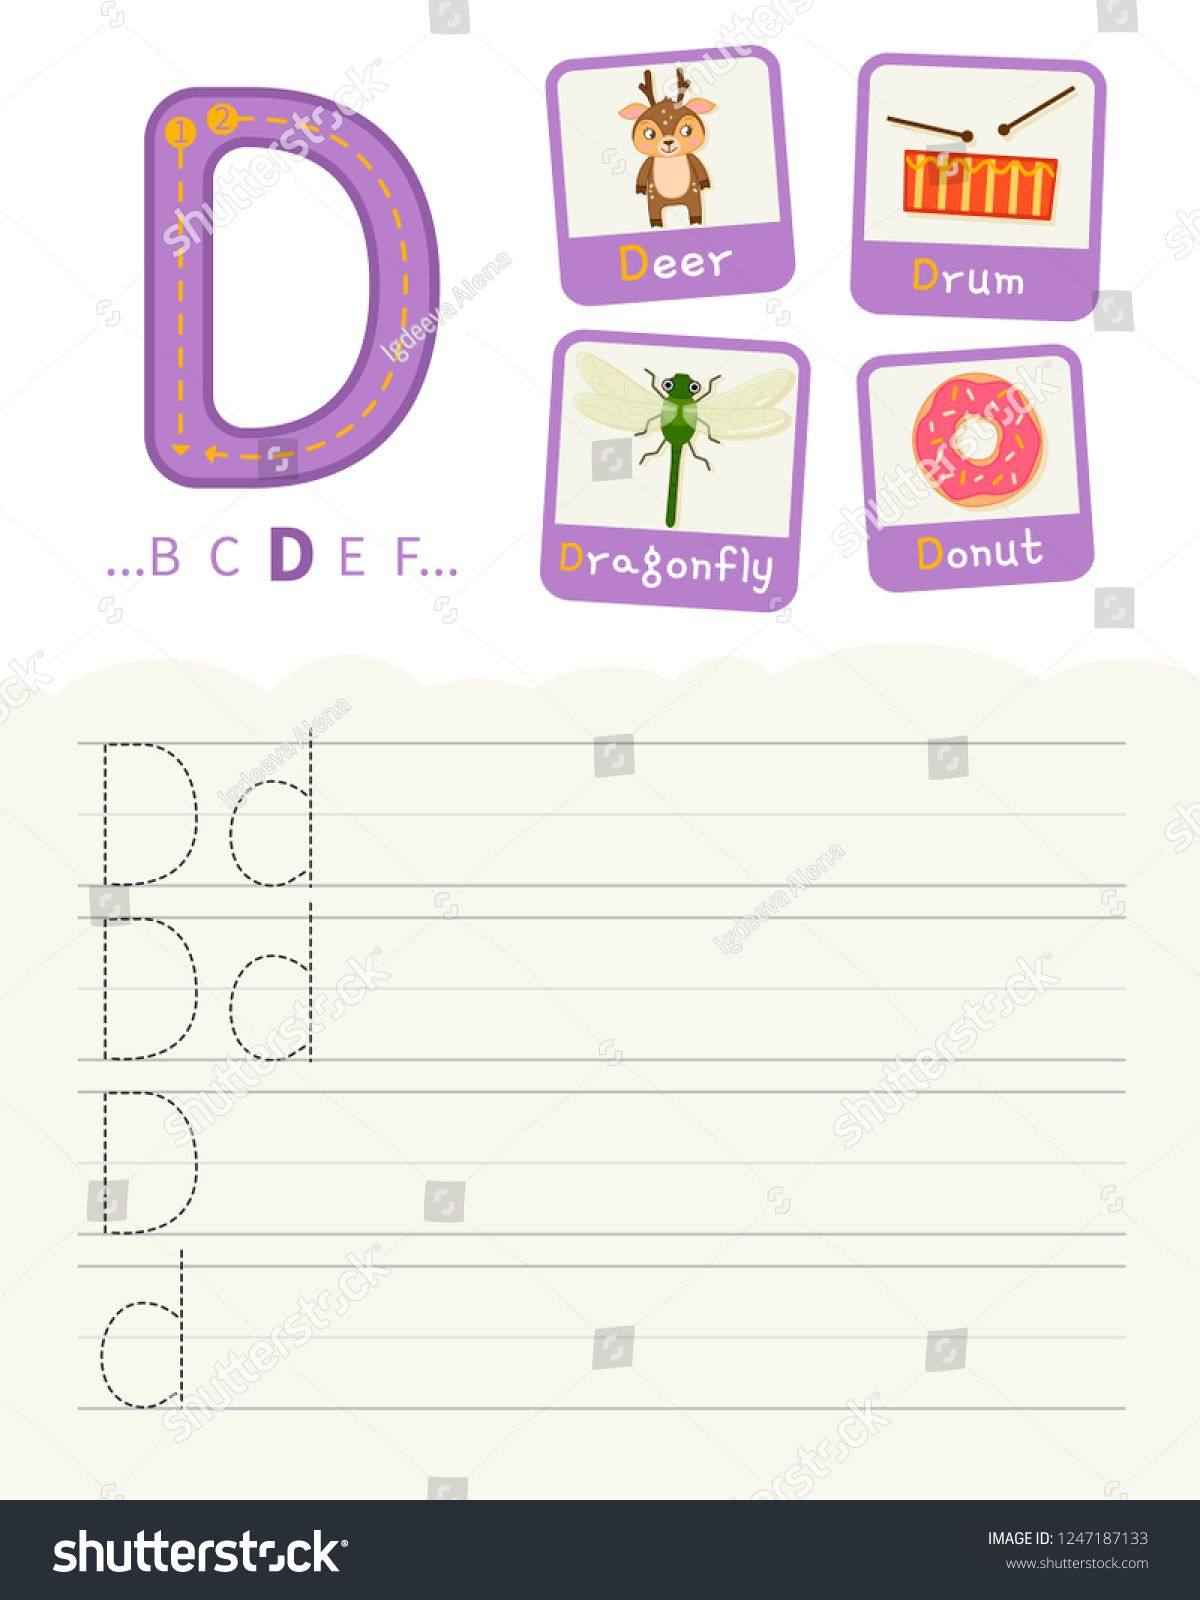 Handwriting practice sheet. Basic writing. Educational game for children. Learning the letters of the English alphabet. Cards with objects. Letter D. ,